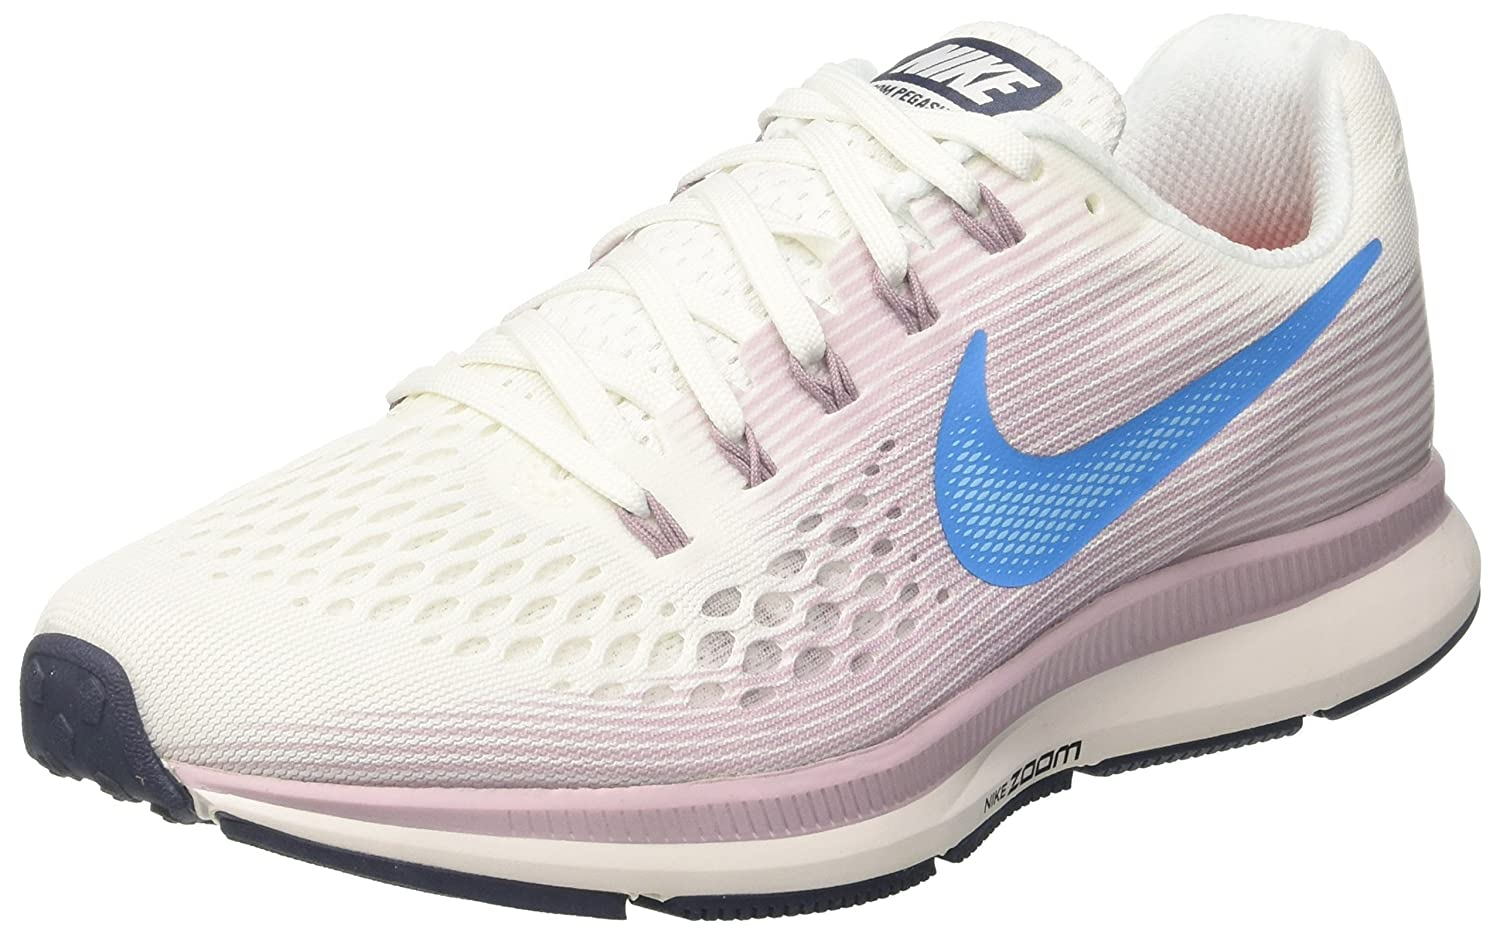 low priced 608b0 1ee9c Amazon.com   Nike Women s Air Zoom Pegasus 34 Running Shoe (10, Summit  White Equator Blue) (10, White)   Road Running